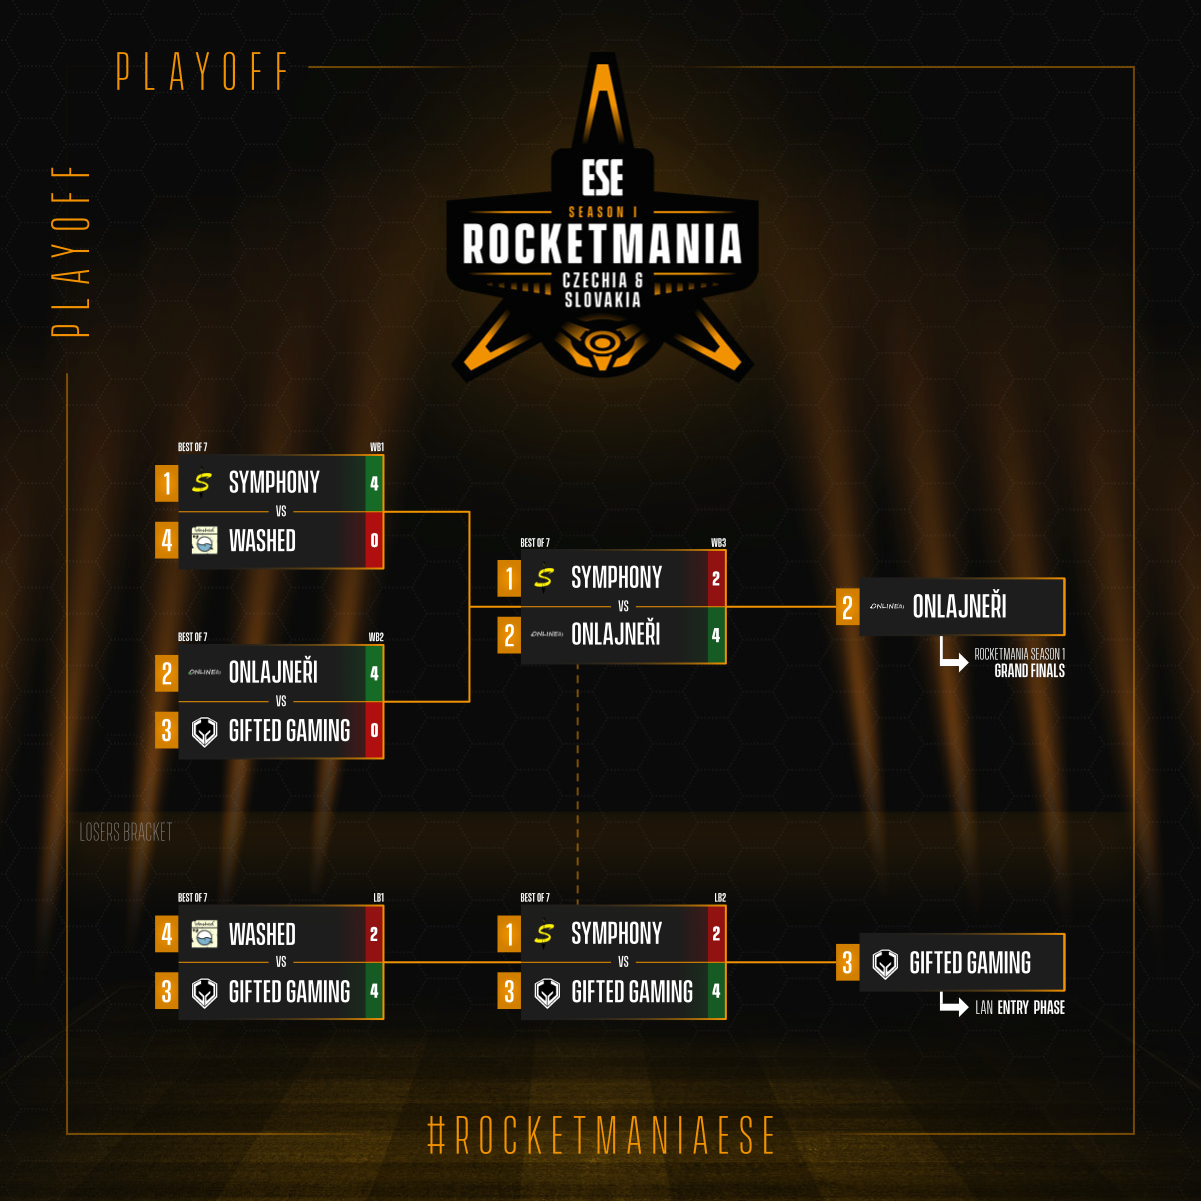 ESE Rocketmania Playoff Series Results